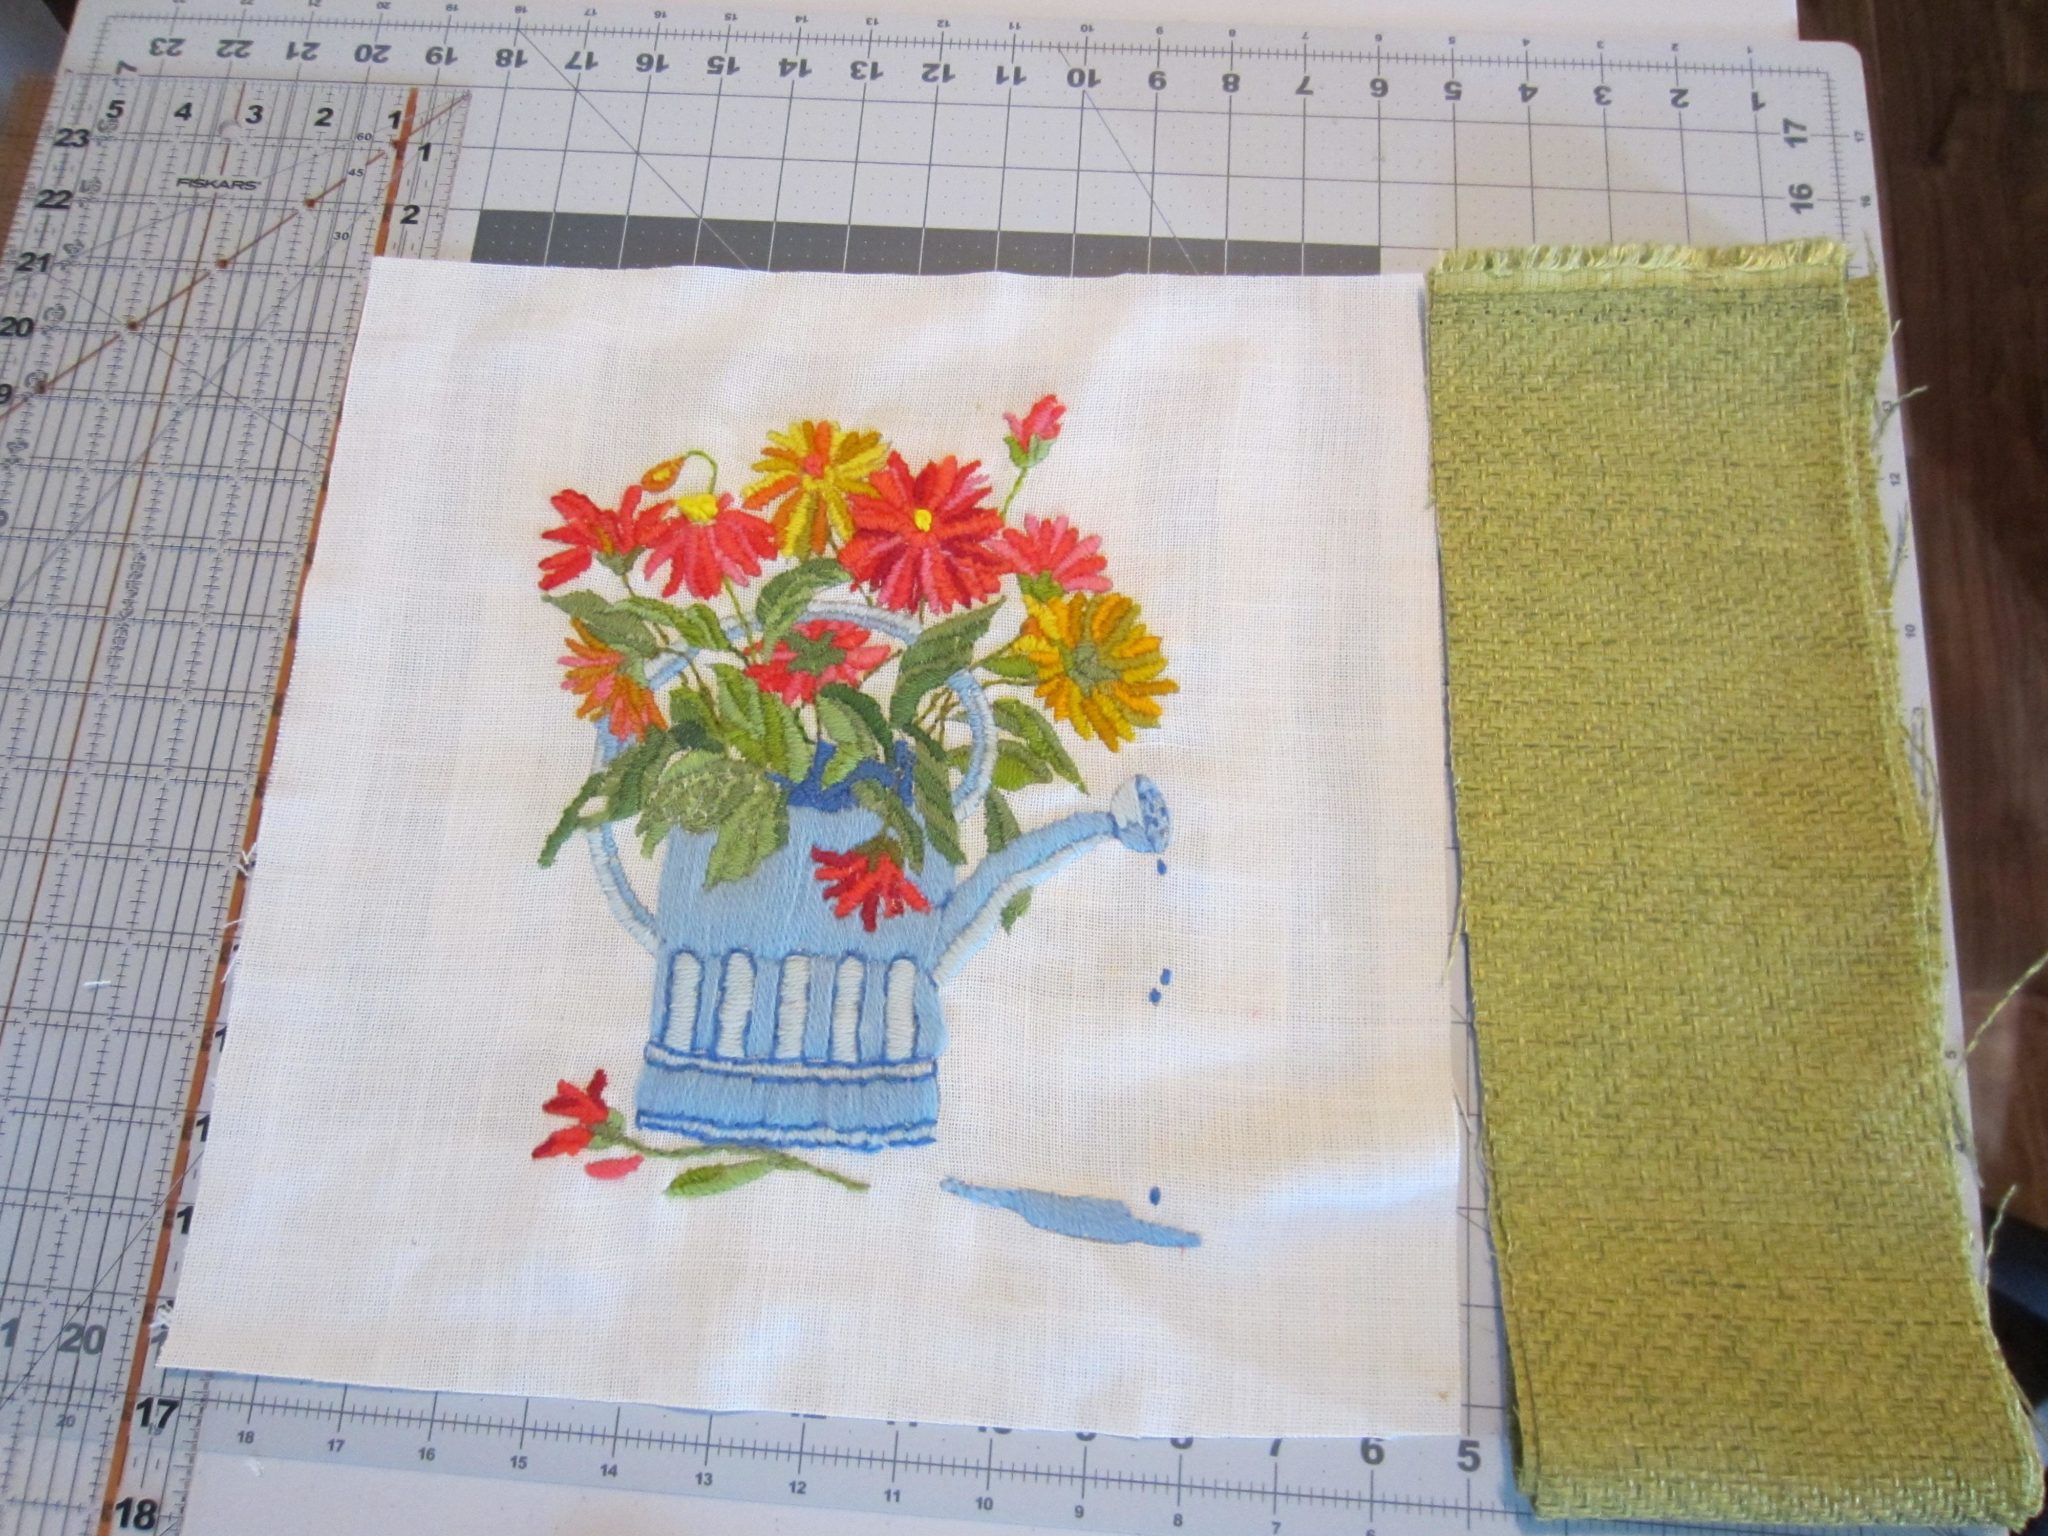 Adding fabric to the piece to make the pillow top